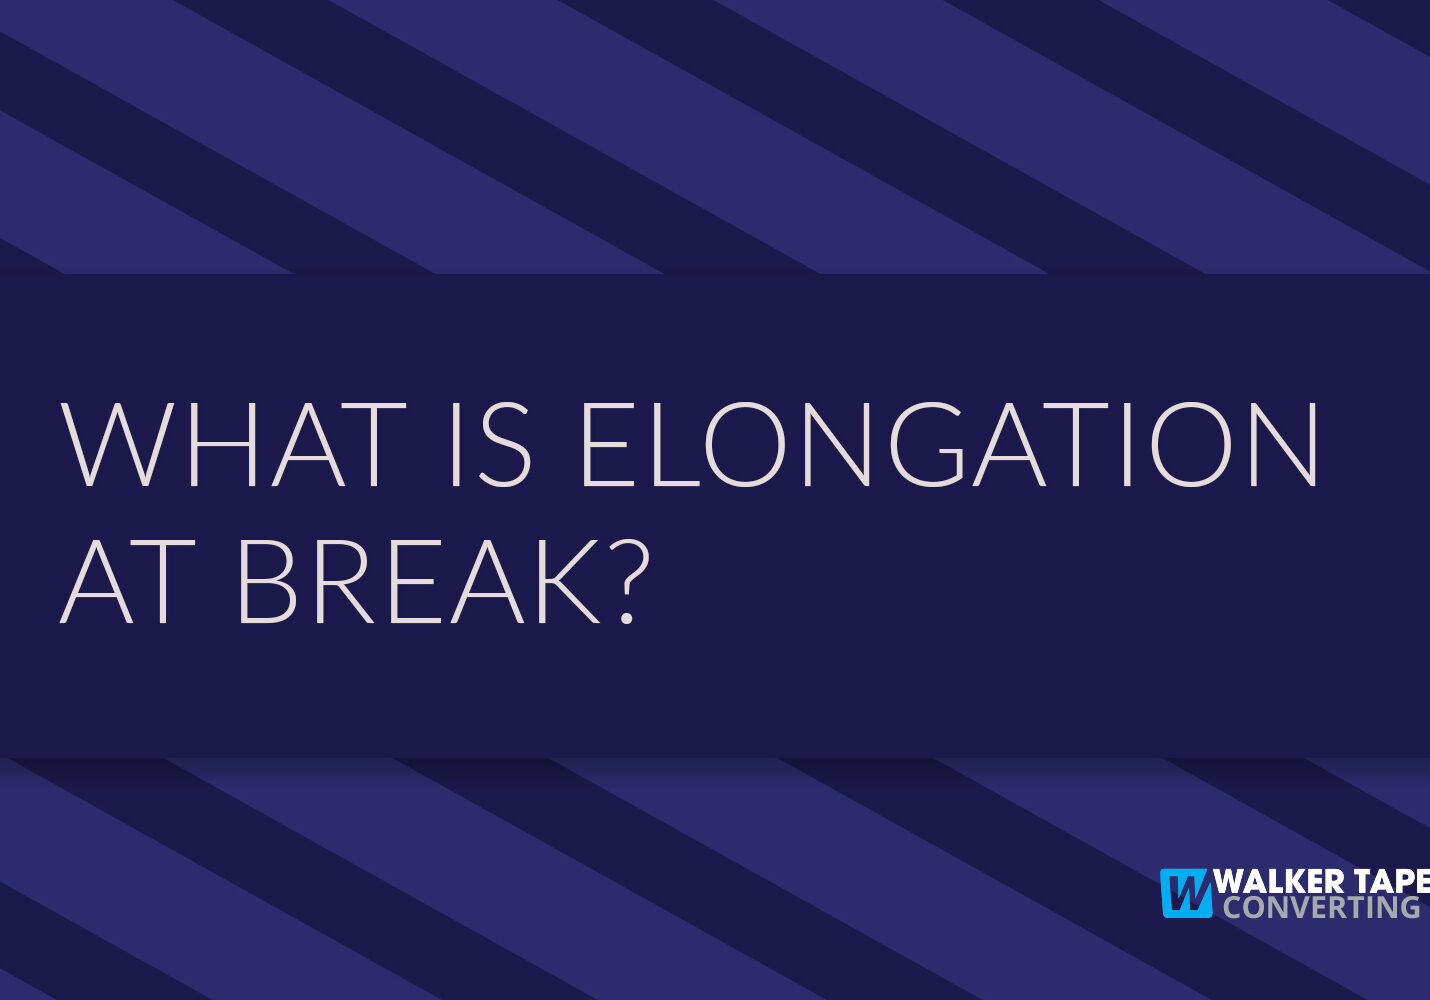 What is Elongation